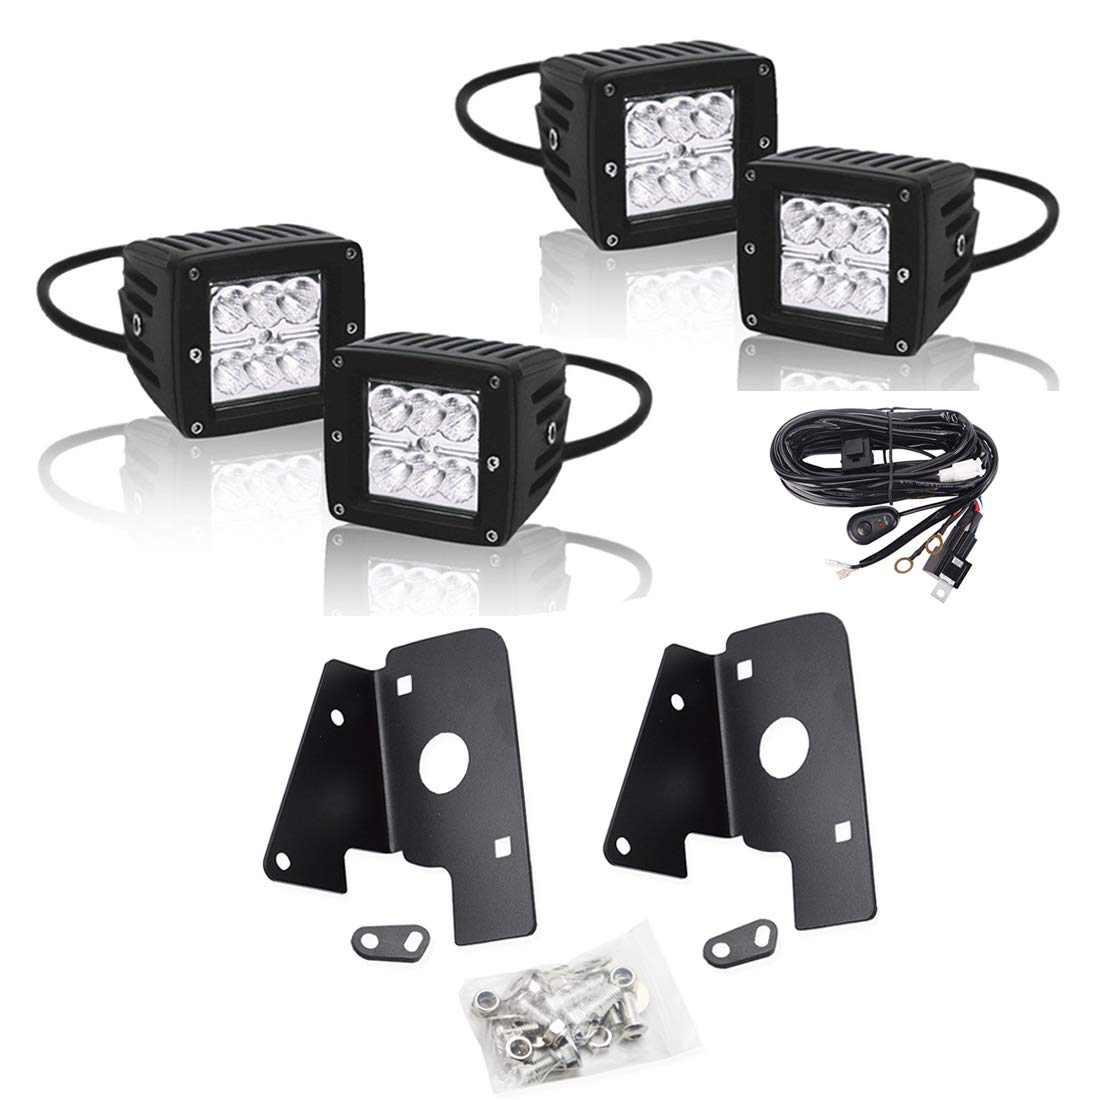 Lower Hidden Bumper Fog Lamp Location Upgrade Mount Brackets Kit And 2007 Chevrolet Silverado Wiring Harness 4pcs 3x3 Inch High Power Led Driving Lights W For 2014 Chevy